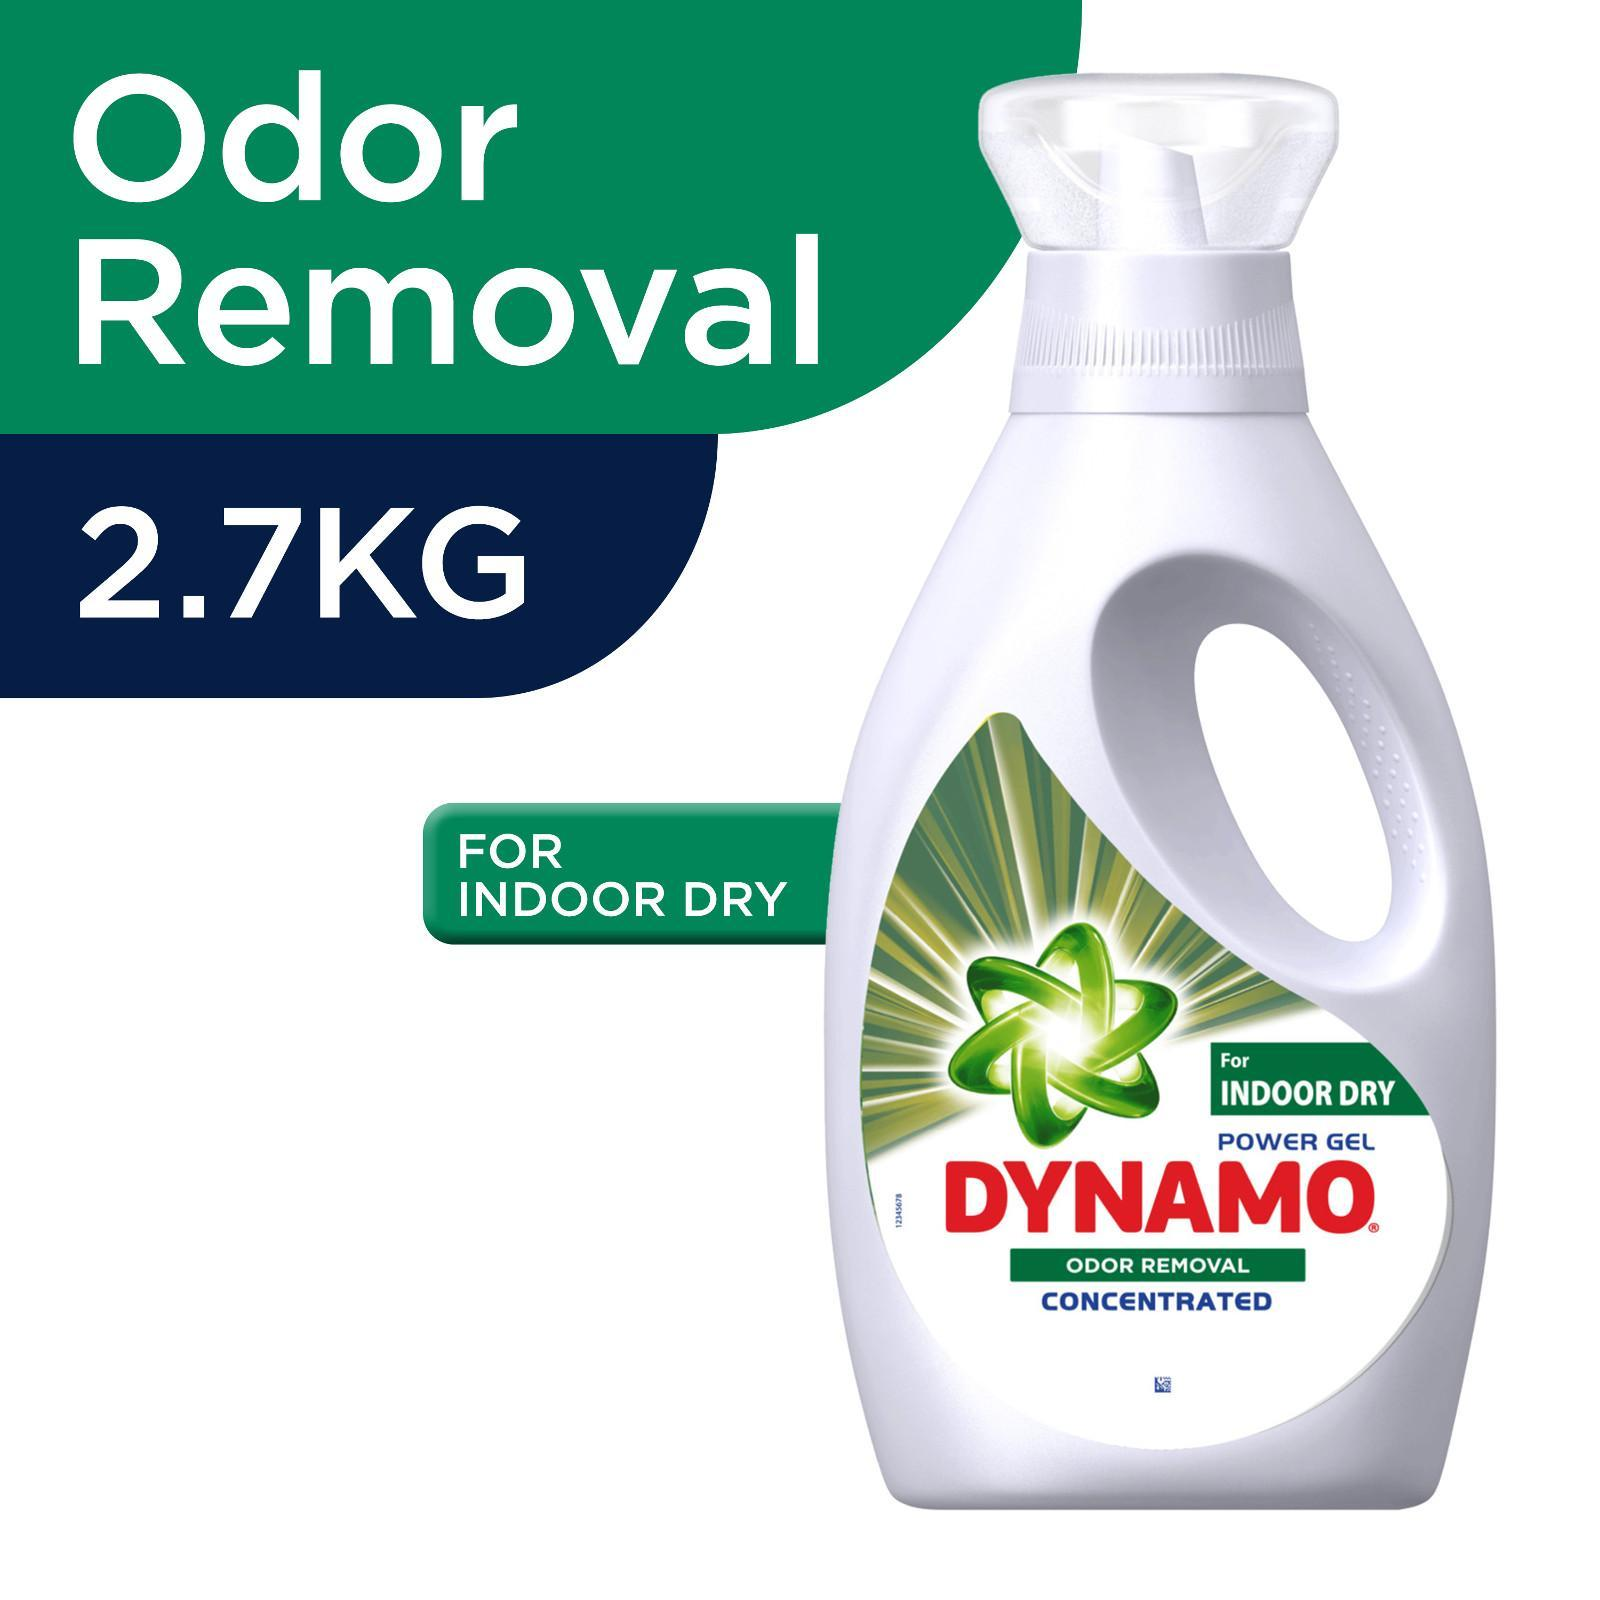 Dynamo Power Gel Odor Removal For Indoor Dry Laundry Detergent